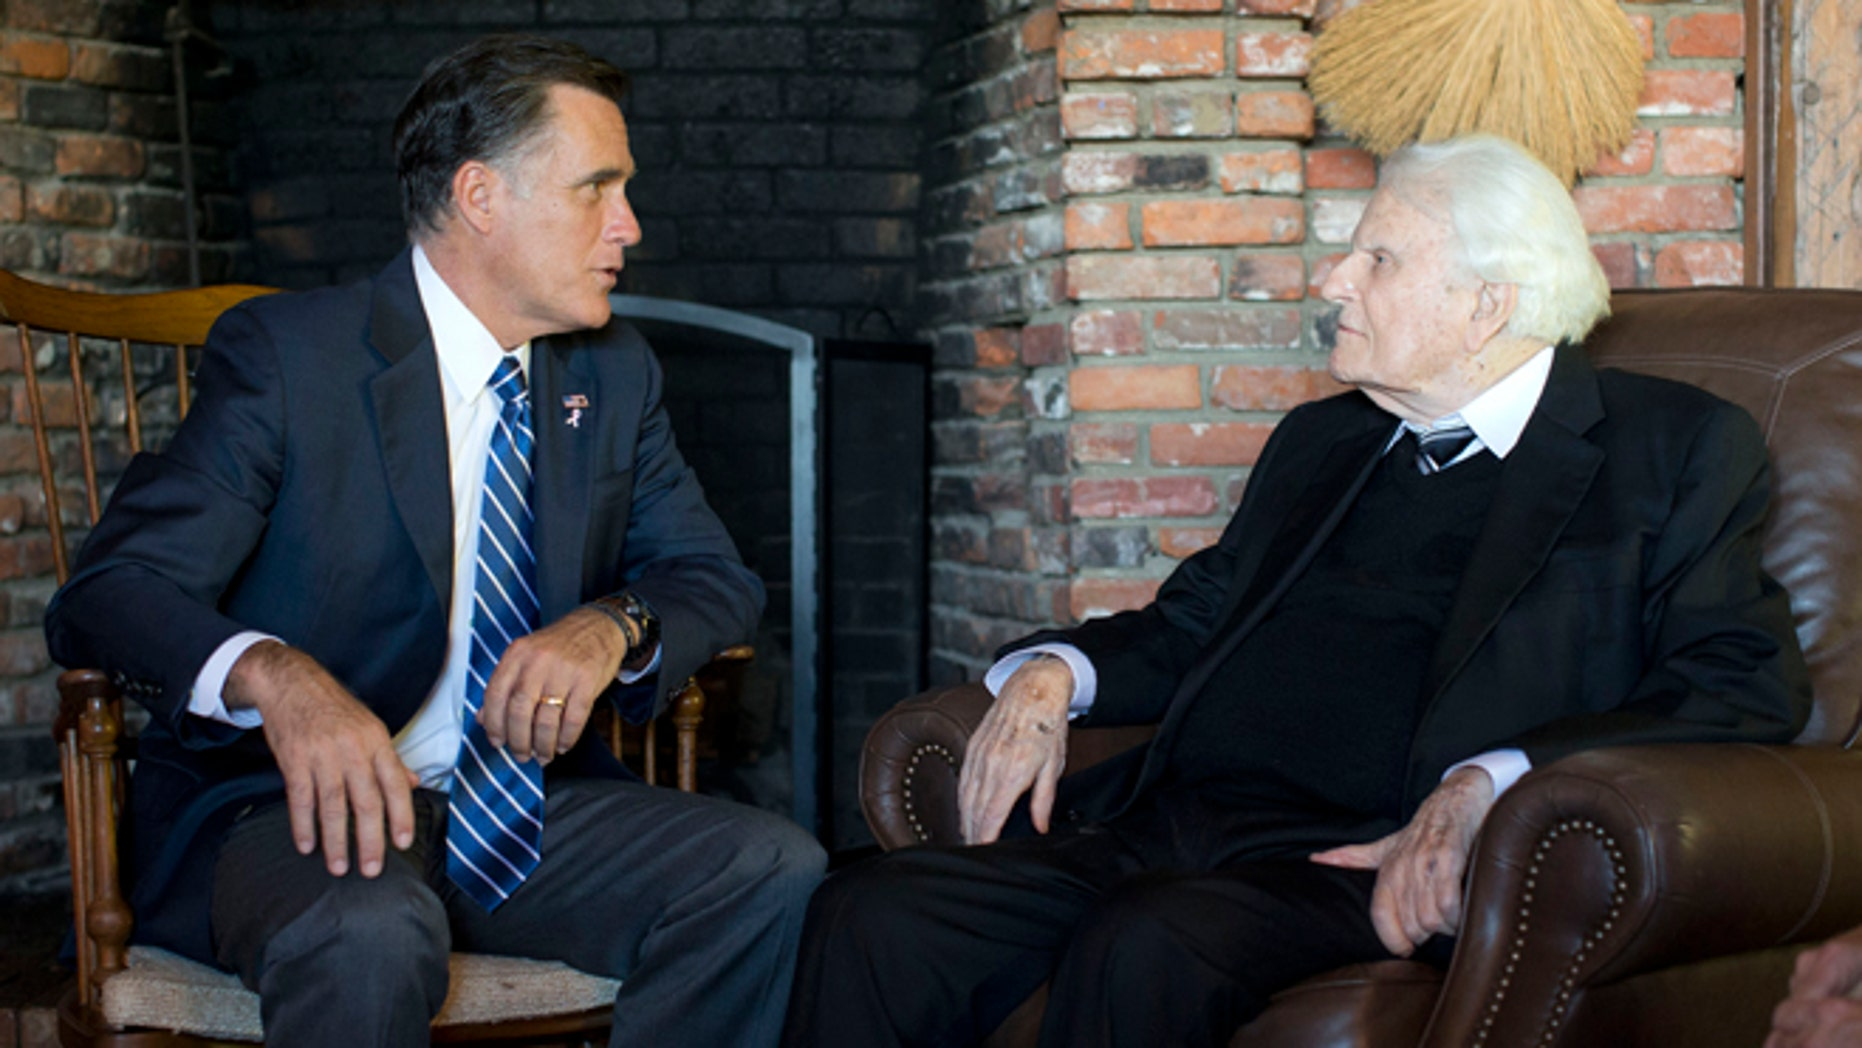 Oct. 11, 2012: Republican presidential candidate, former Massachusetts Gov. Mitt Romney meets with Rev. Billy Graham in Montreat, N.C.